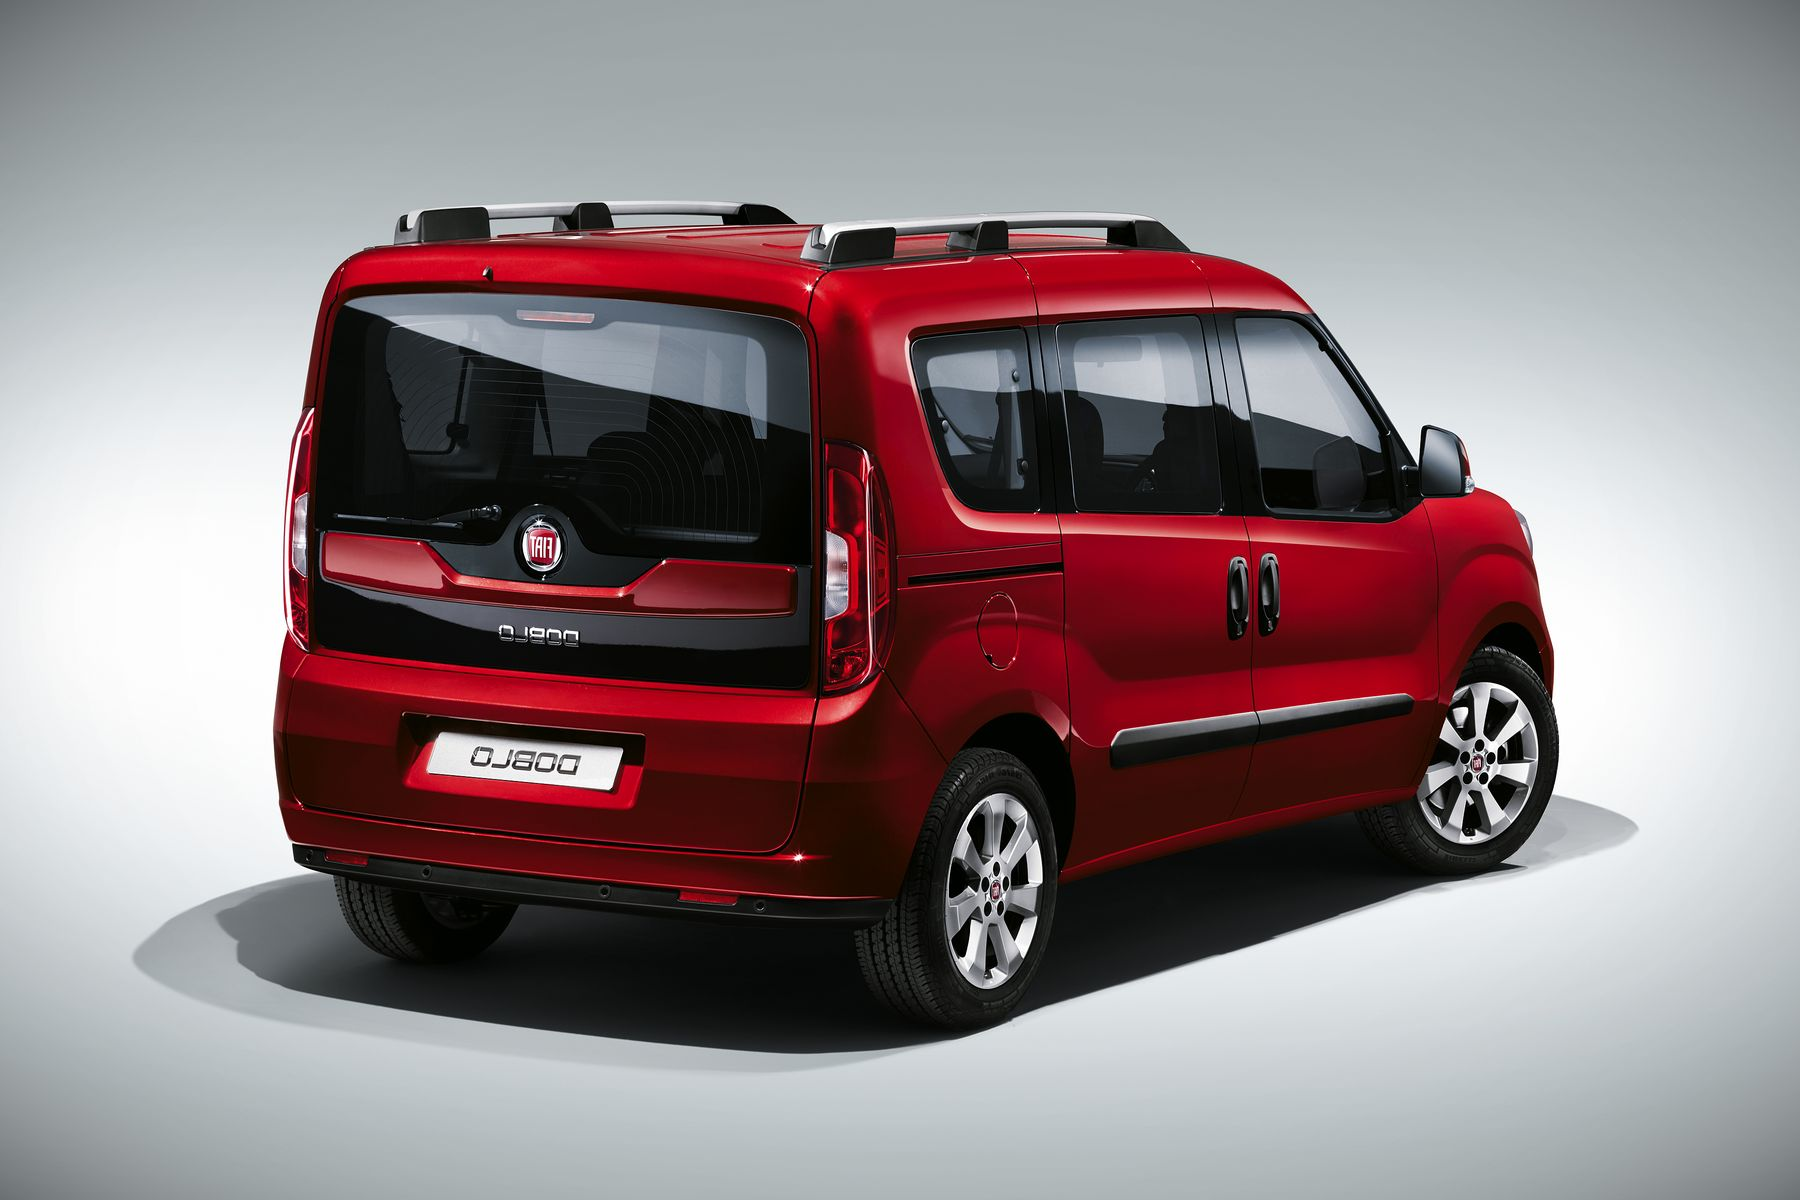 2017 fiat doblo release date new suv price. Black Bedroom Furniture Sets. Home Design Ideas